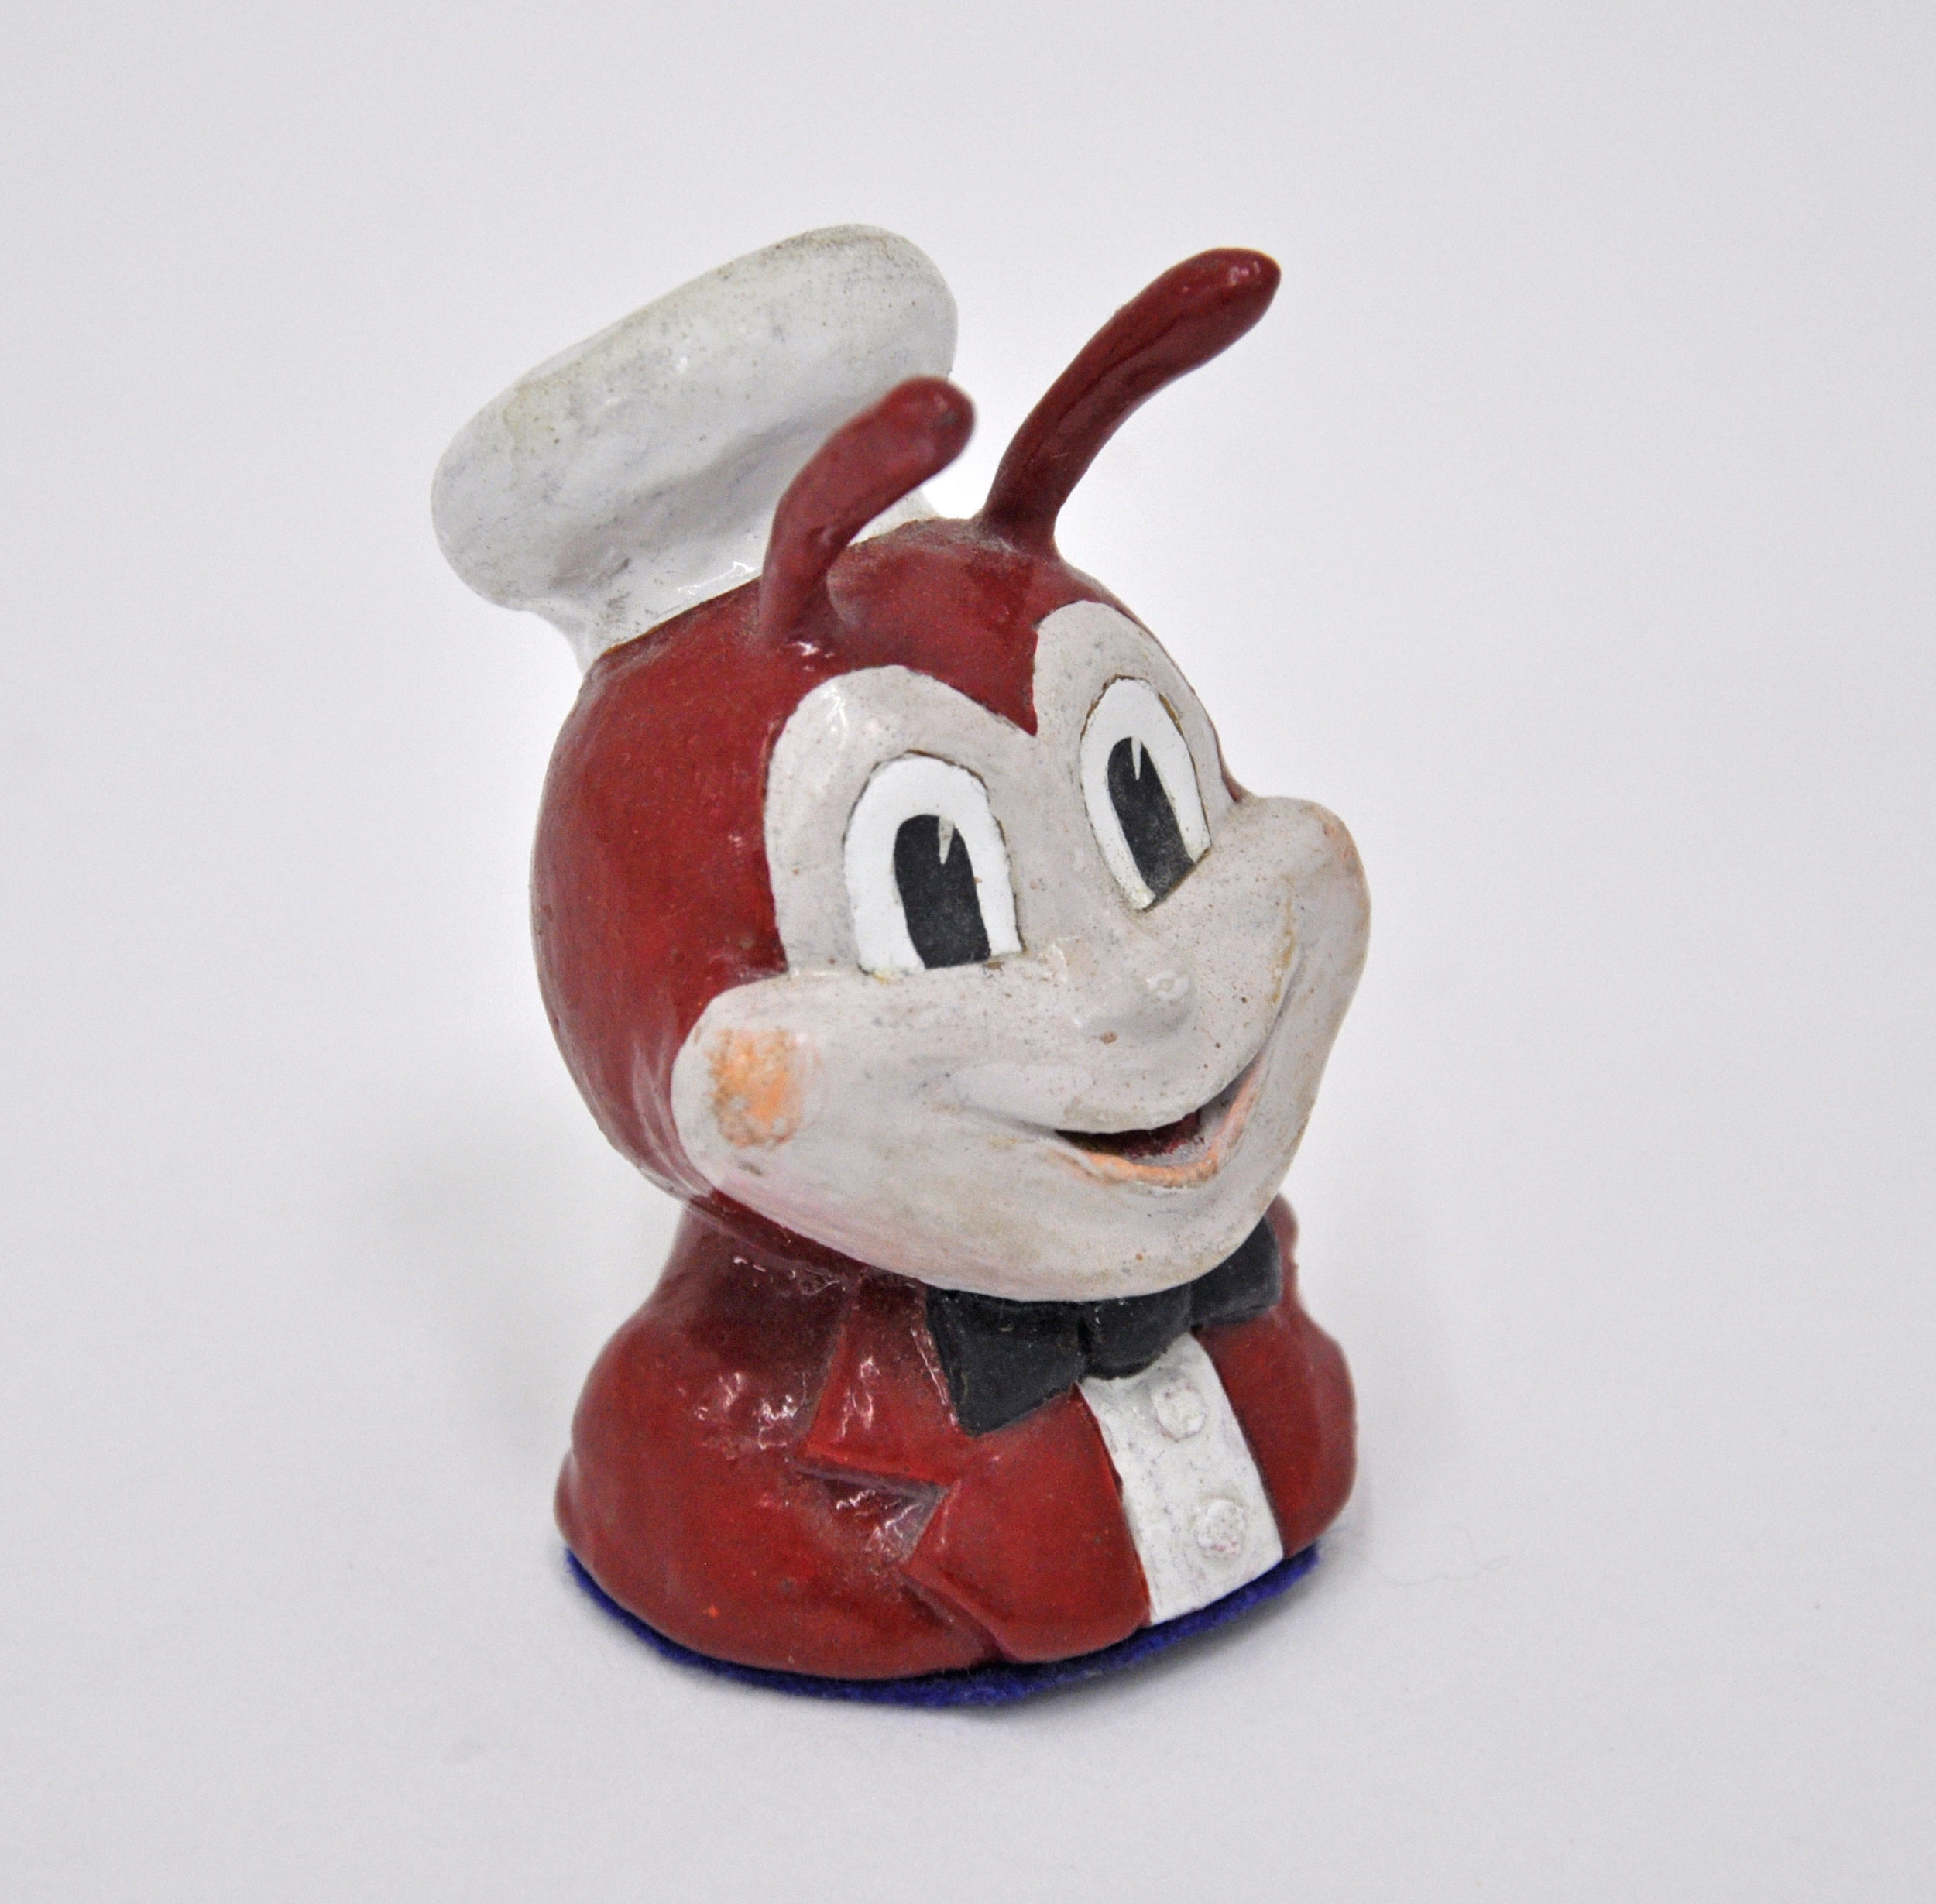 Malcolm Kenter, Jollibee E. Rodriguez, 2019, Enamel on Plasticine, 2 x 1.5 x 3 in